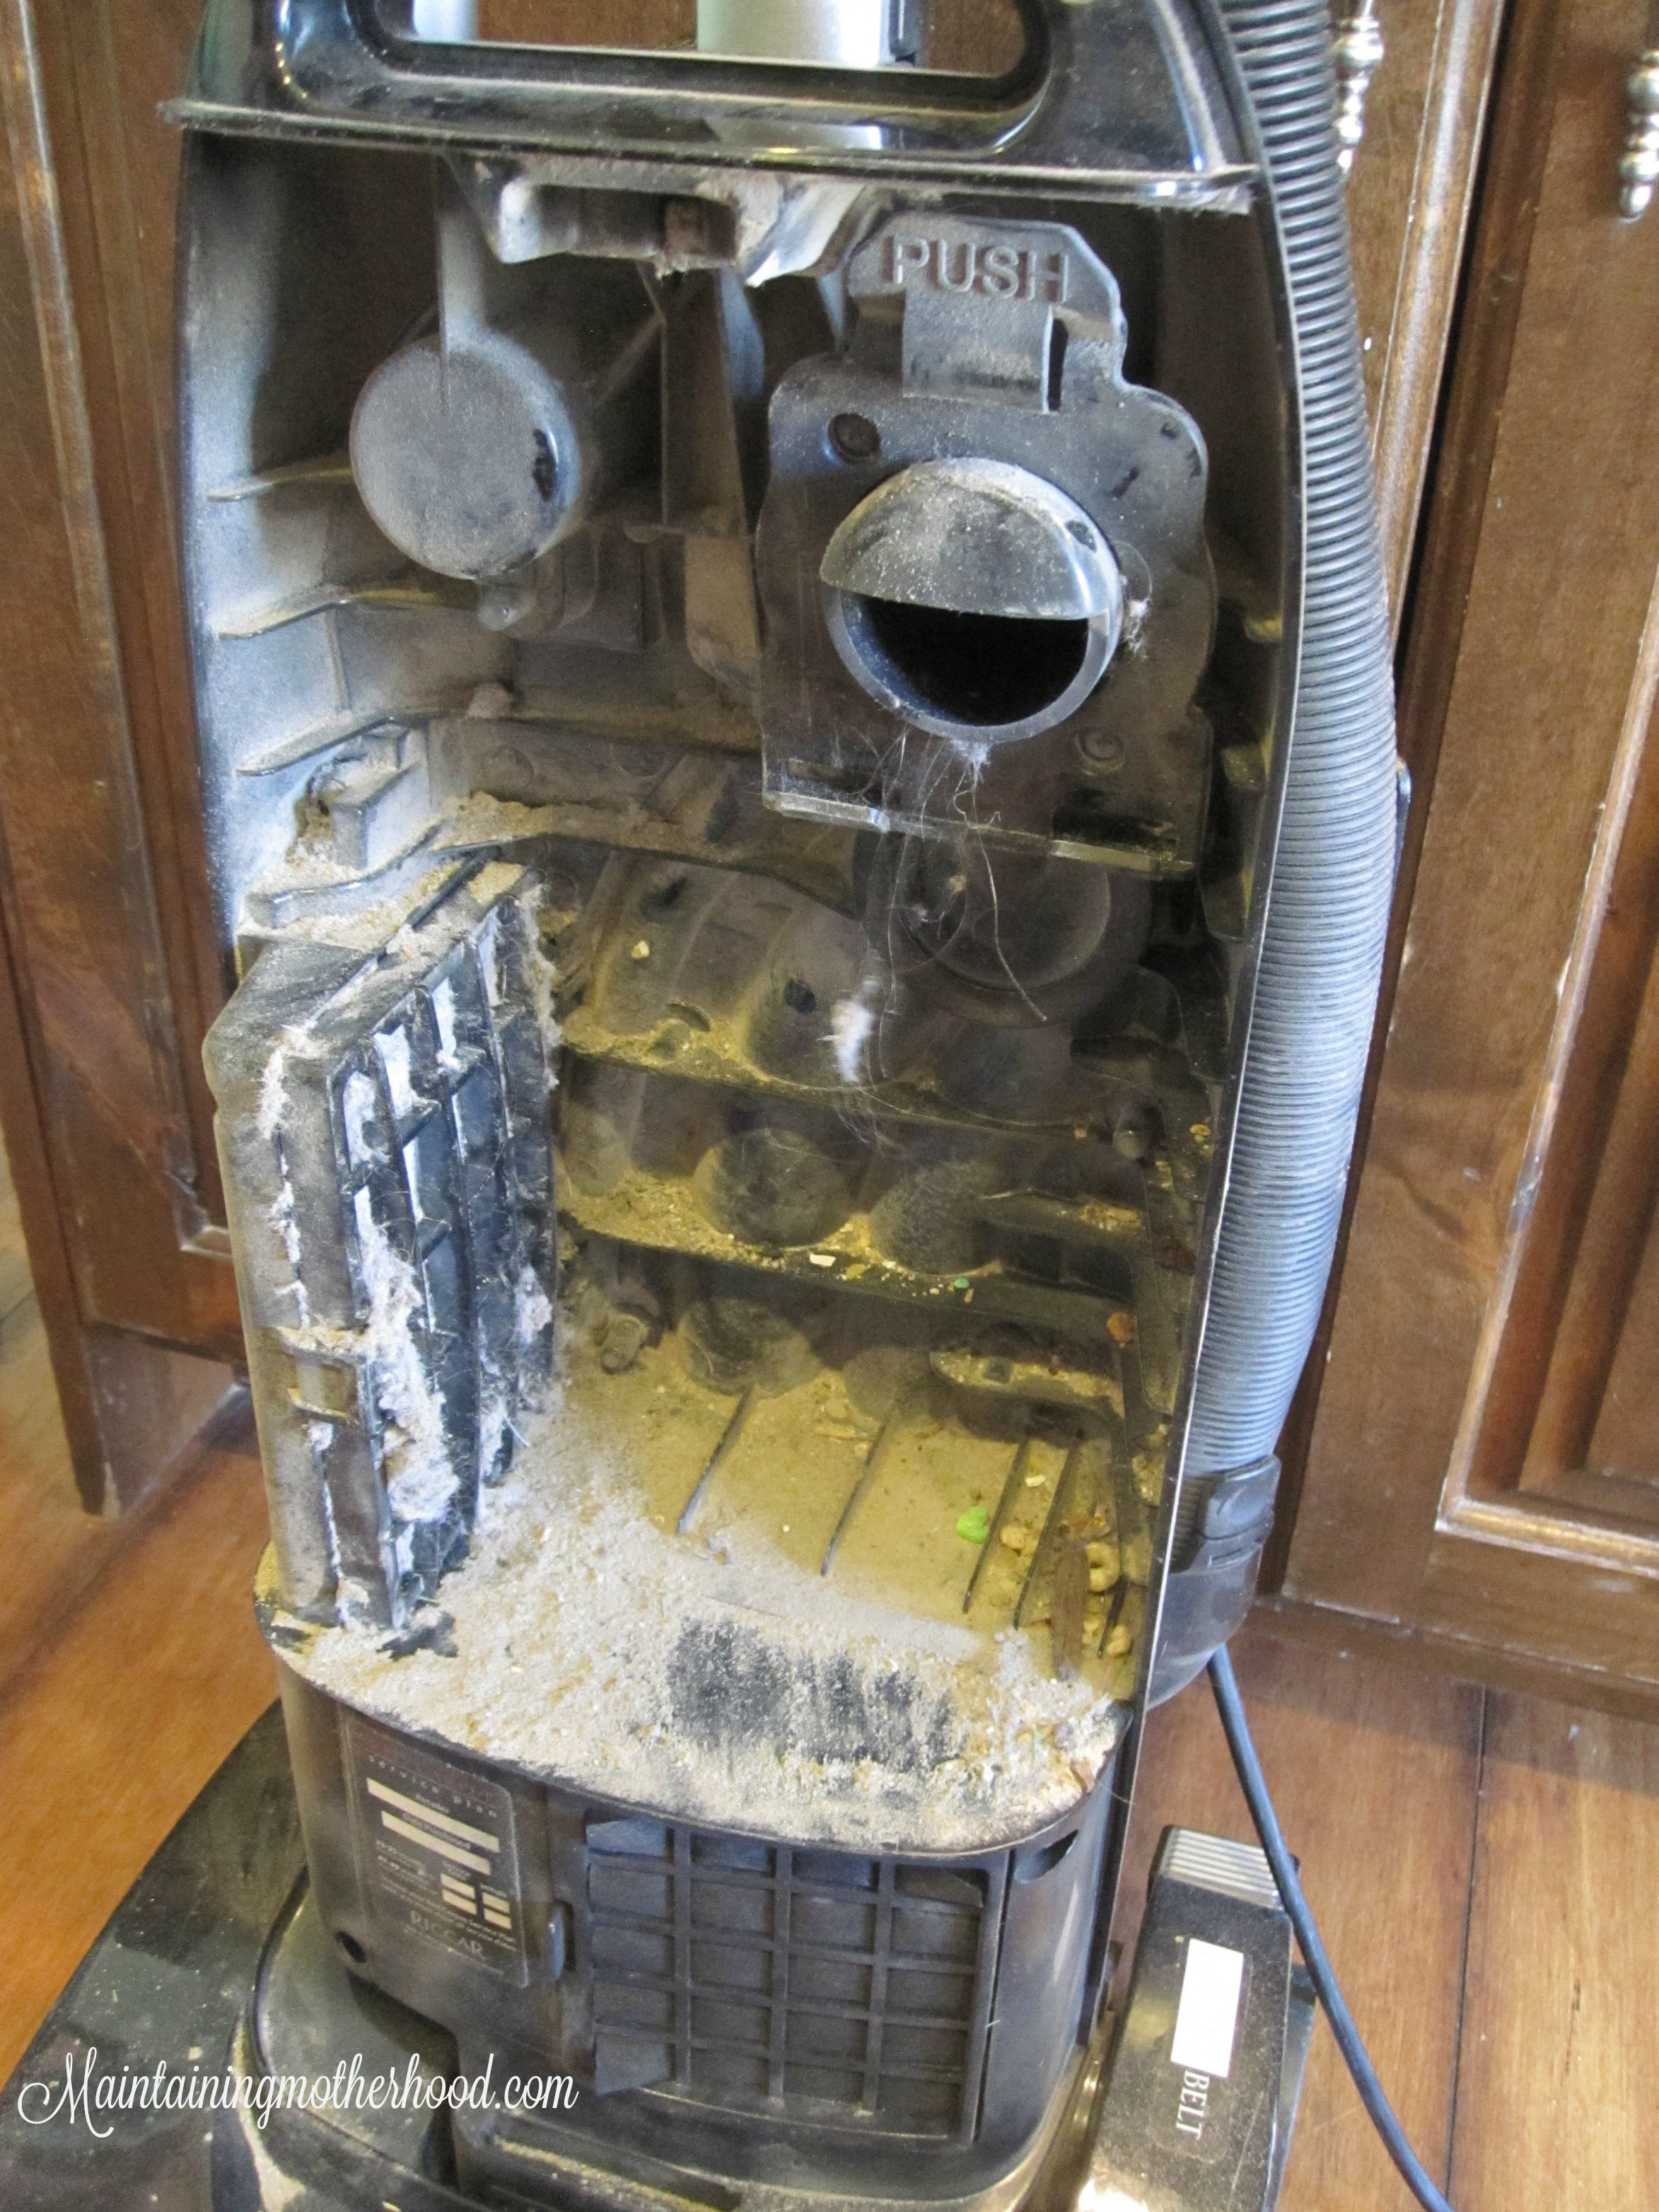 Does your vacuum suck? If not, learn how to deep clean your vacuum: clean filters, unclog, and detangle the nasties. Increase the life of your vacuum!